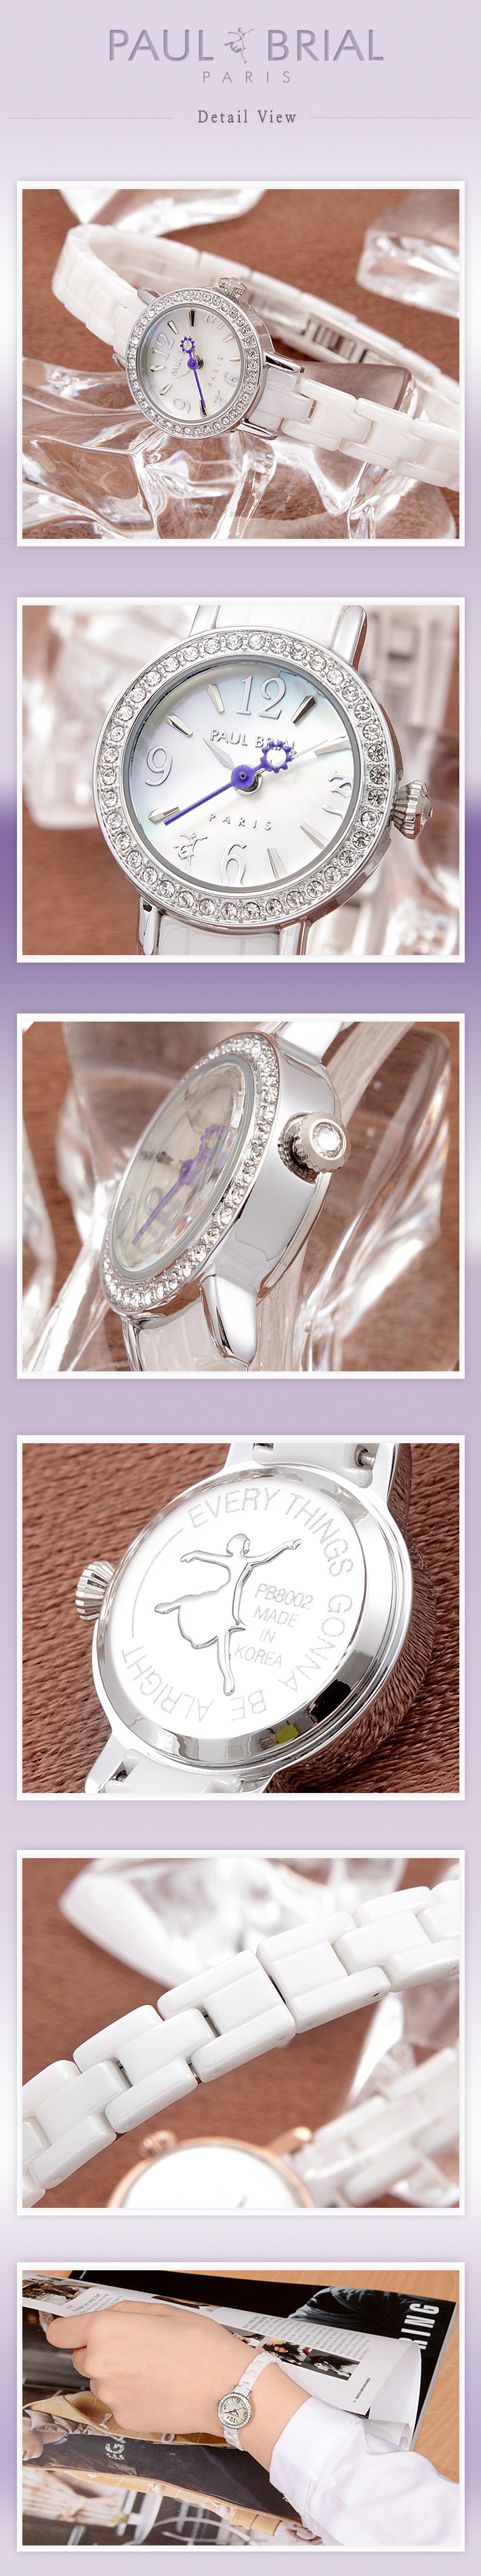 [ PAUL BRIAL ] KOREA MADE HIGH QUALITY LADIES SILVER WHITE CERAMIC WATCH PB8002WSS_A MARSEILLE